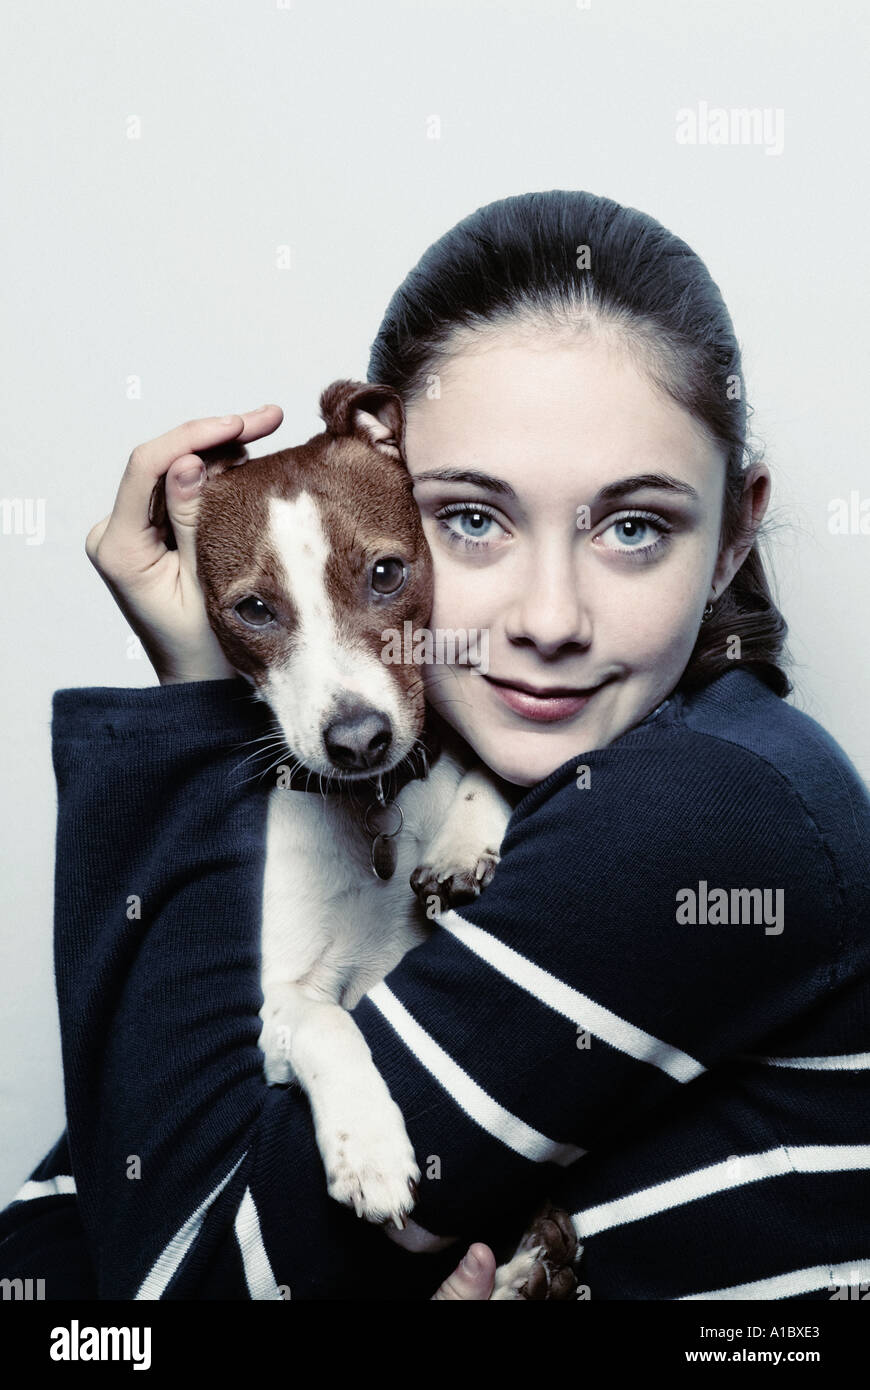 young girl holding a jack russell puppy dog - Stock Image